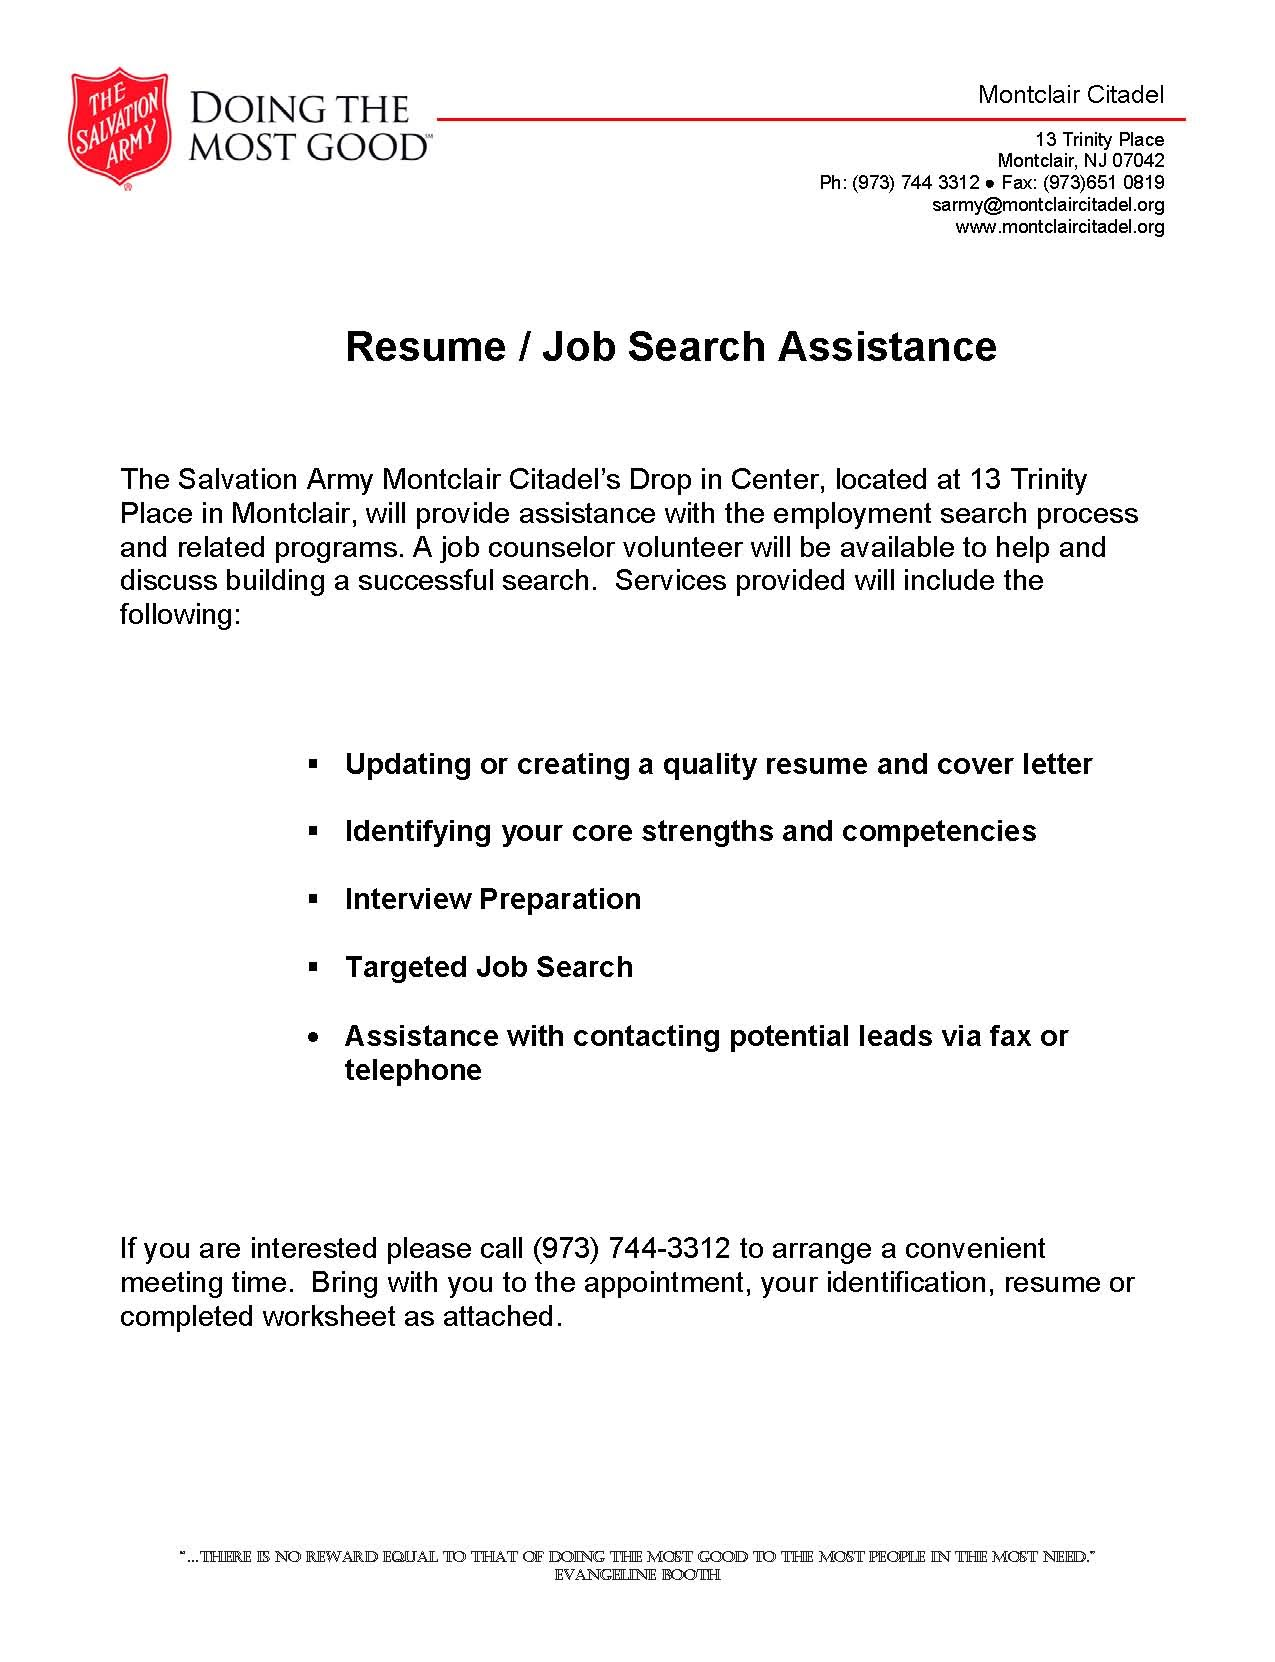 resume writing assistance resume builder resume writing assistance resume writing advice help monster salvation army job search resume writing assistance montclaircares